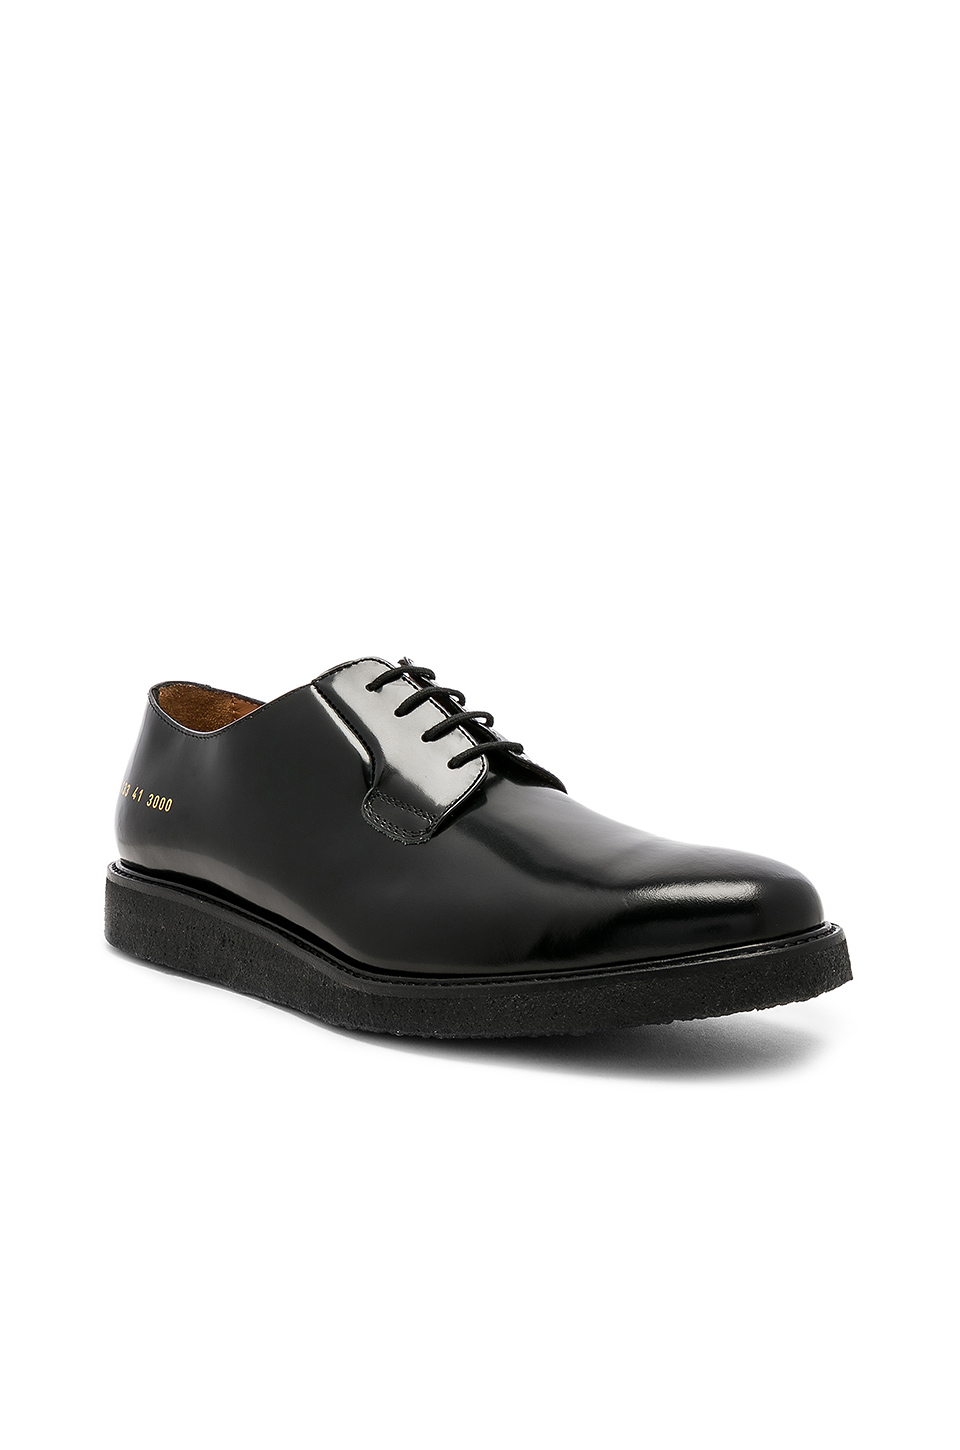 Common Projects Derby Shine in Black & Black